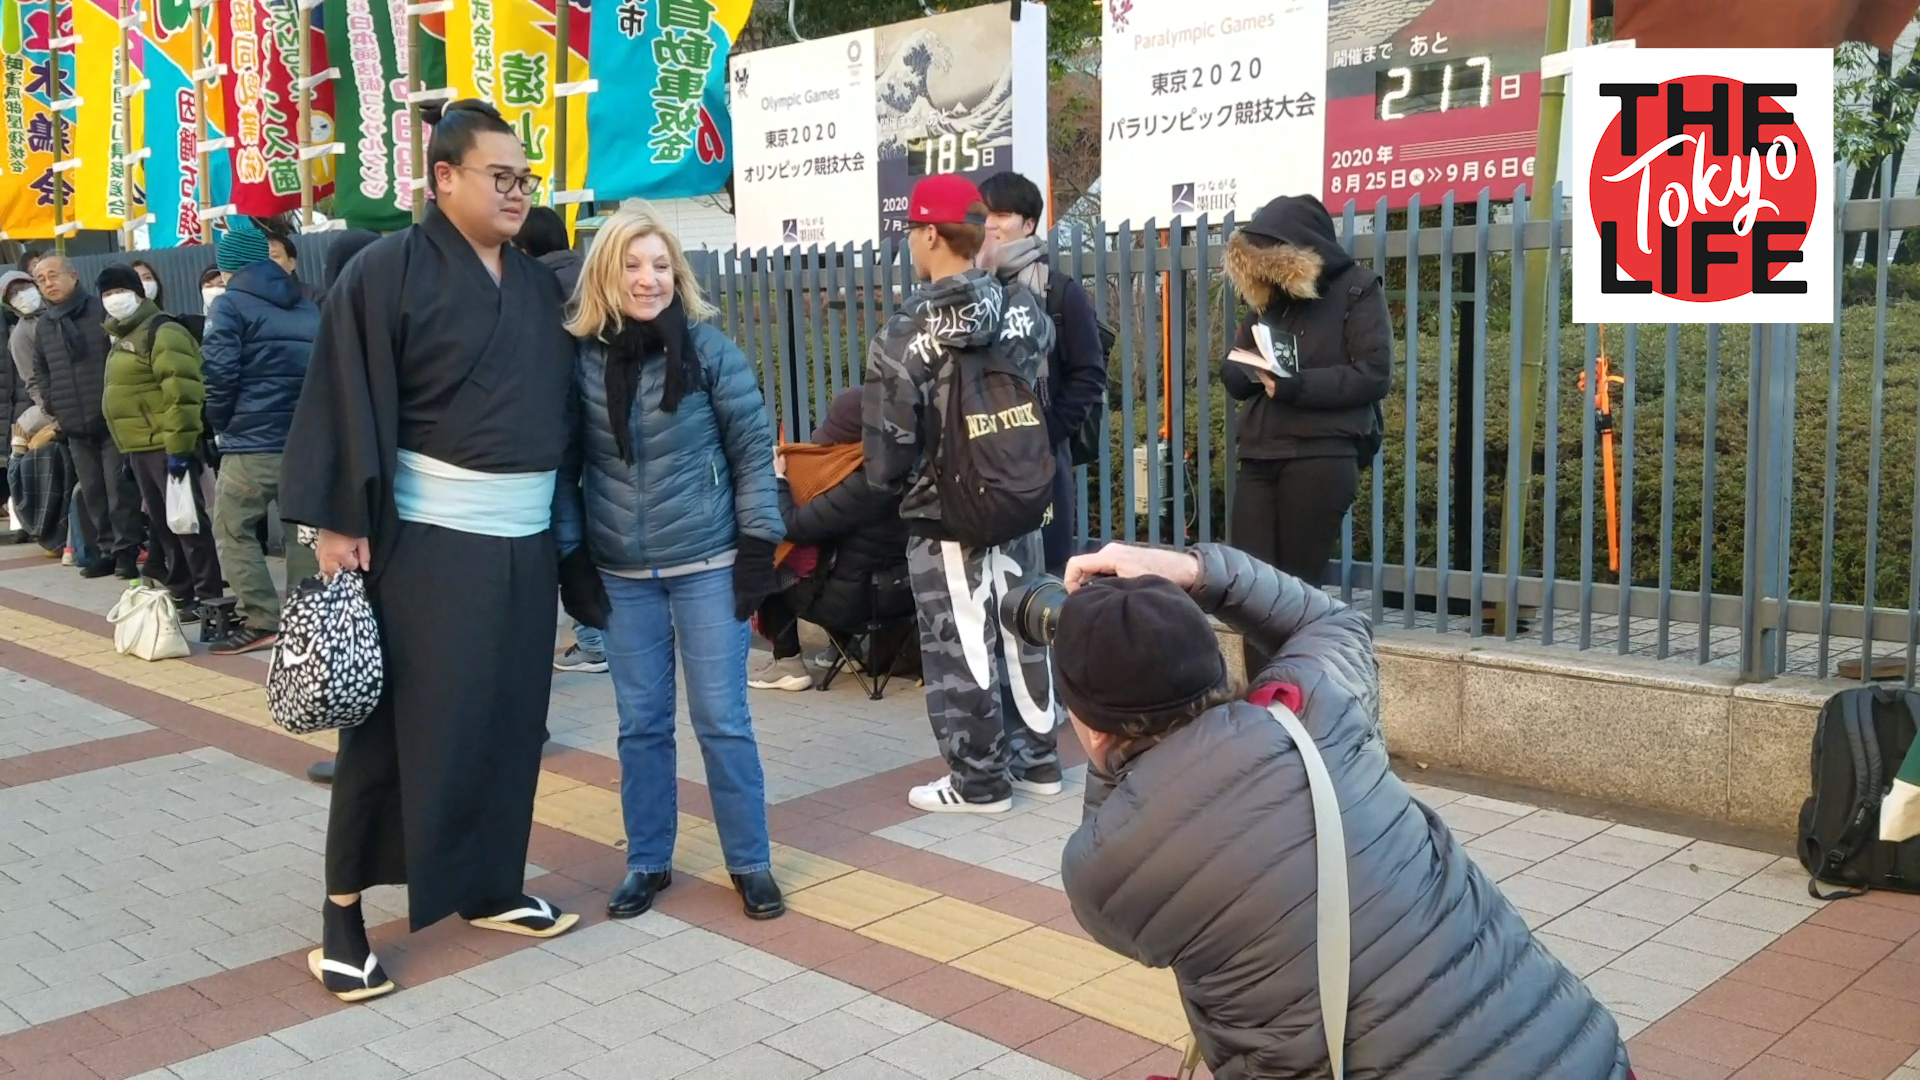 Maction Planet 'A Day at the Sumo' video collaboration with The Tokyo Life